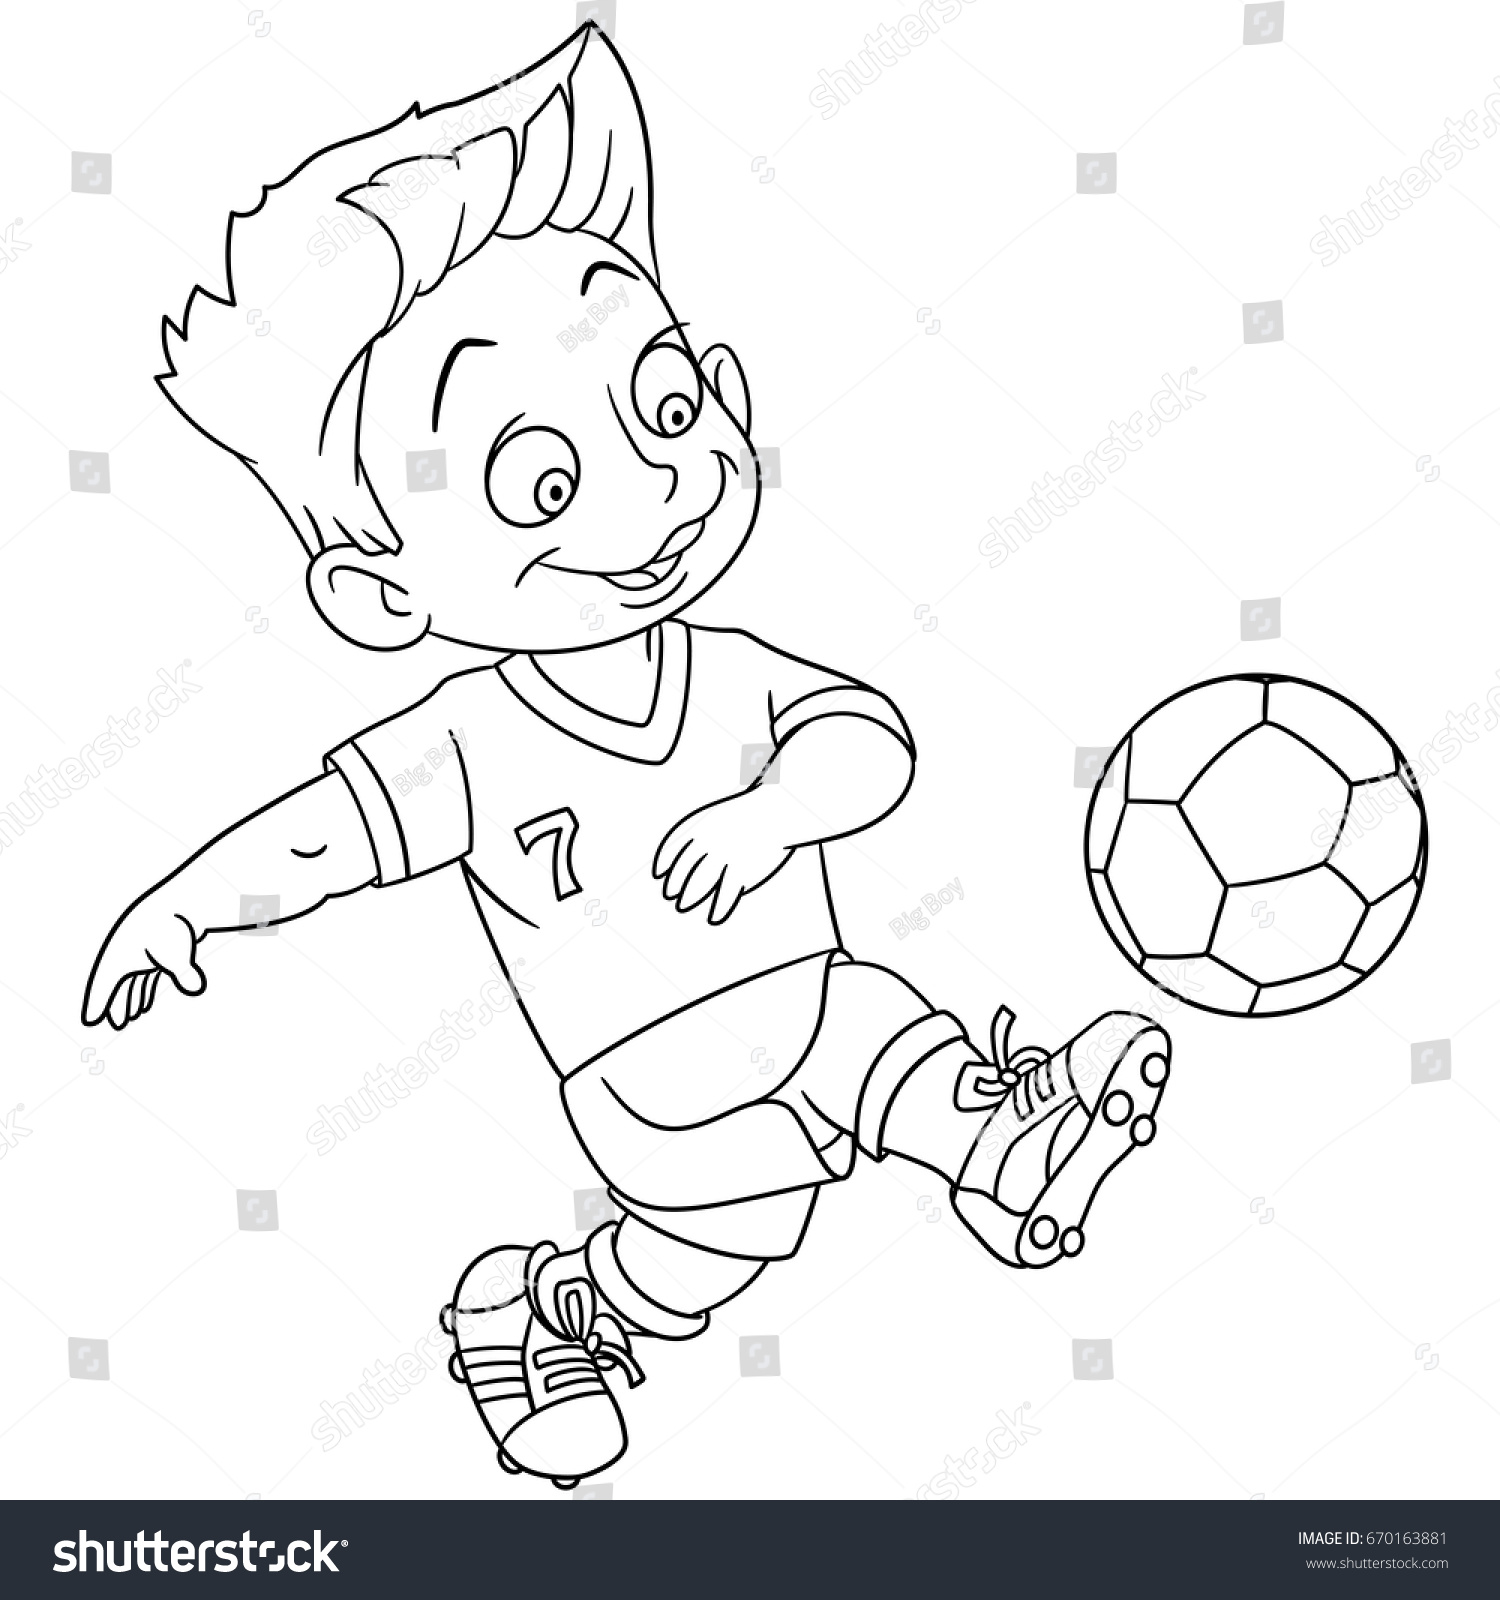 coloring page cartoon boy playing football stock vector (royalty